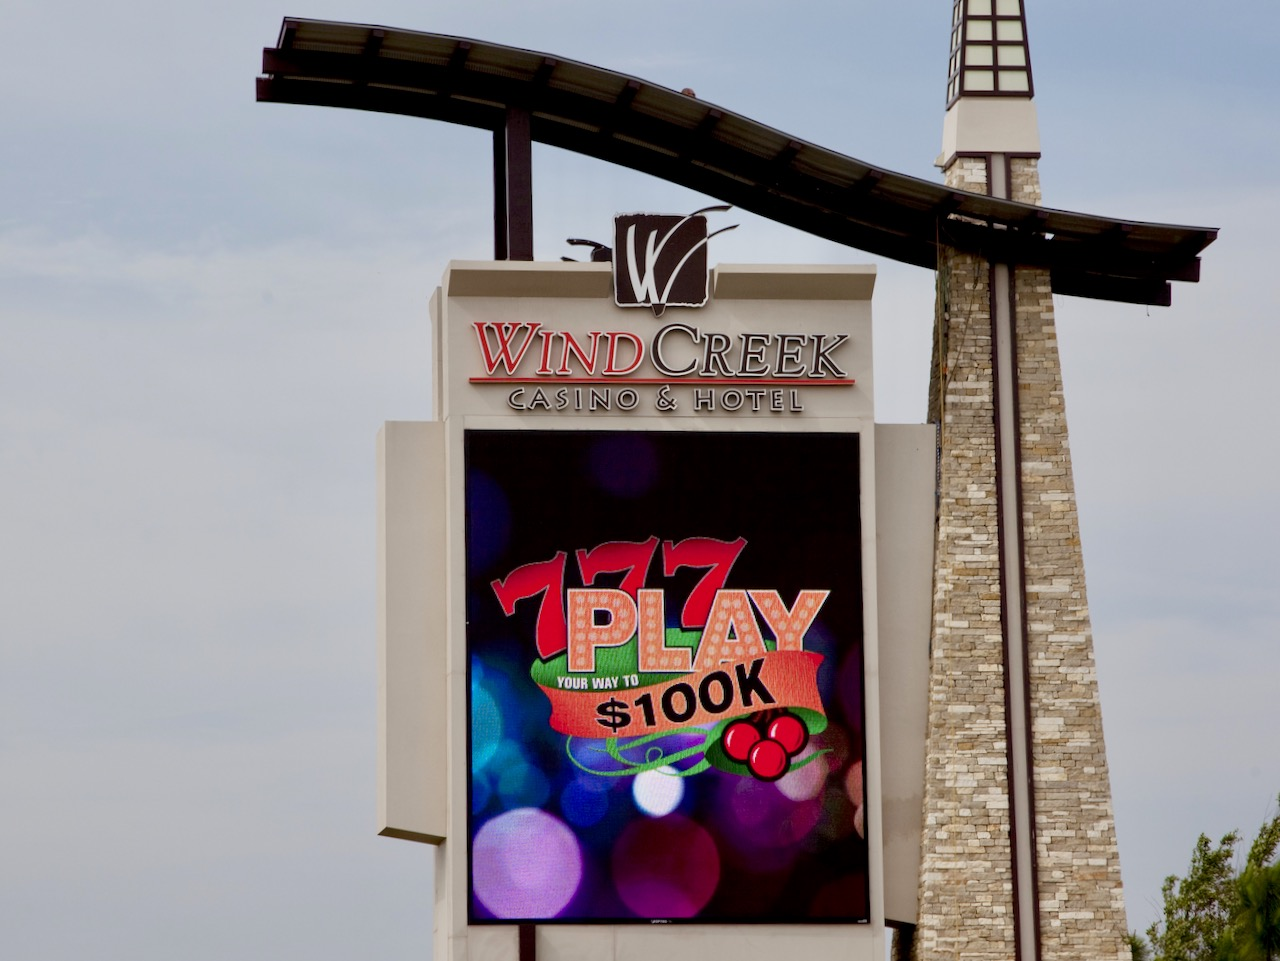 Poarch Band of Creek Indians seeks commercial casino in Illinois